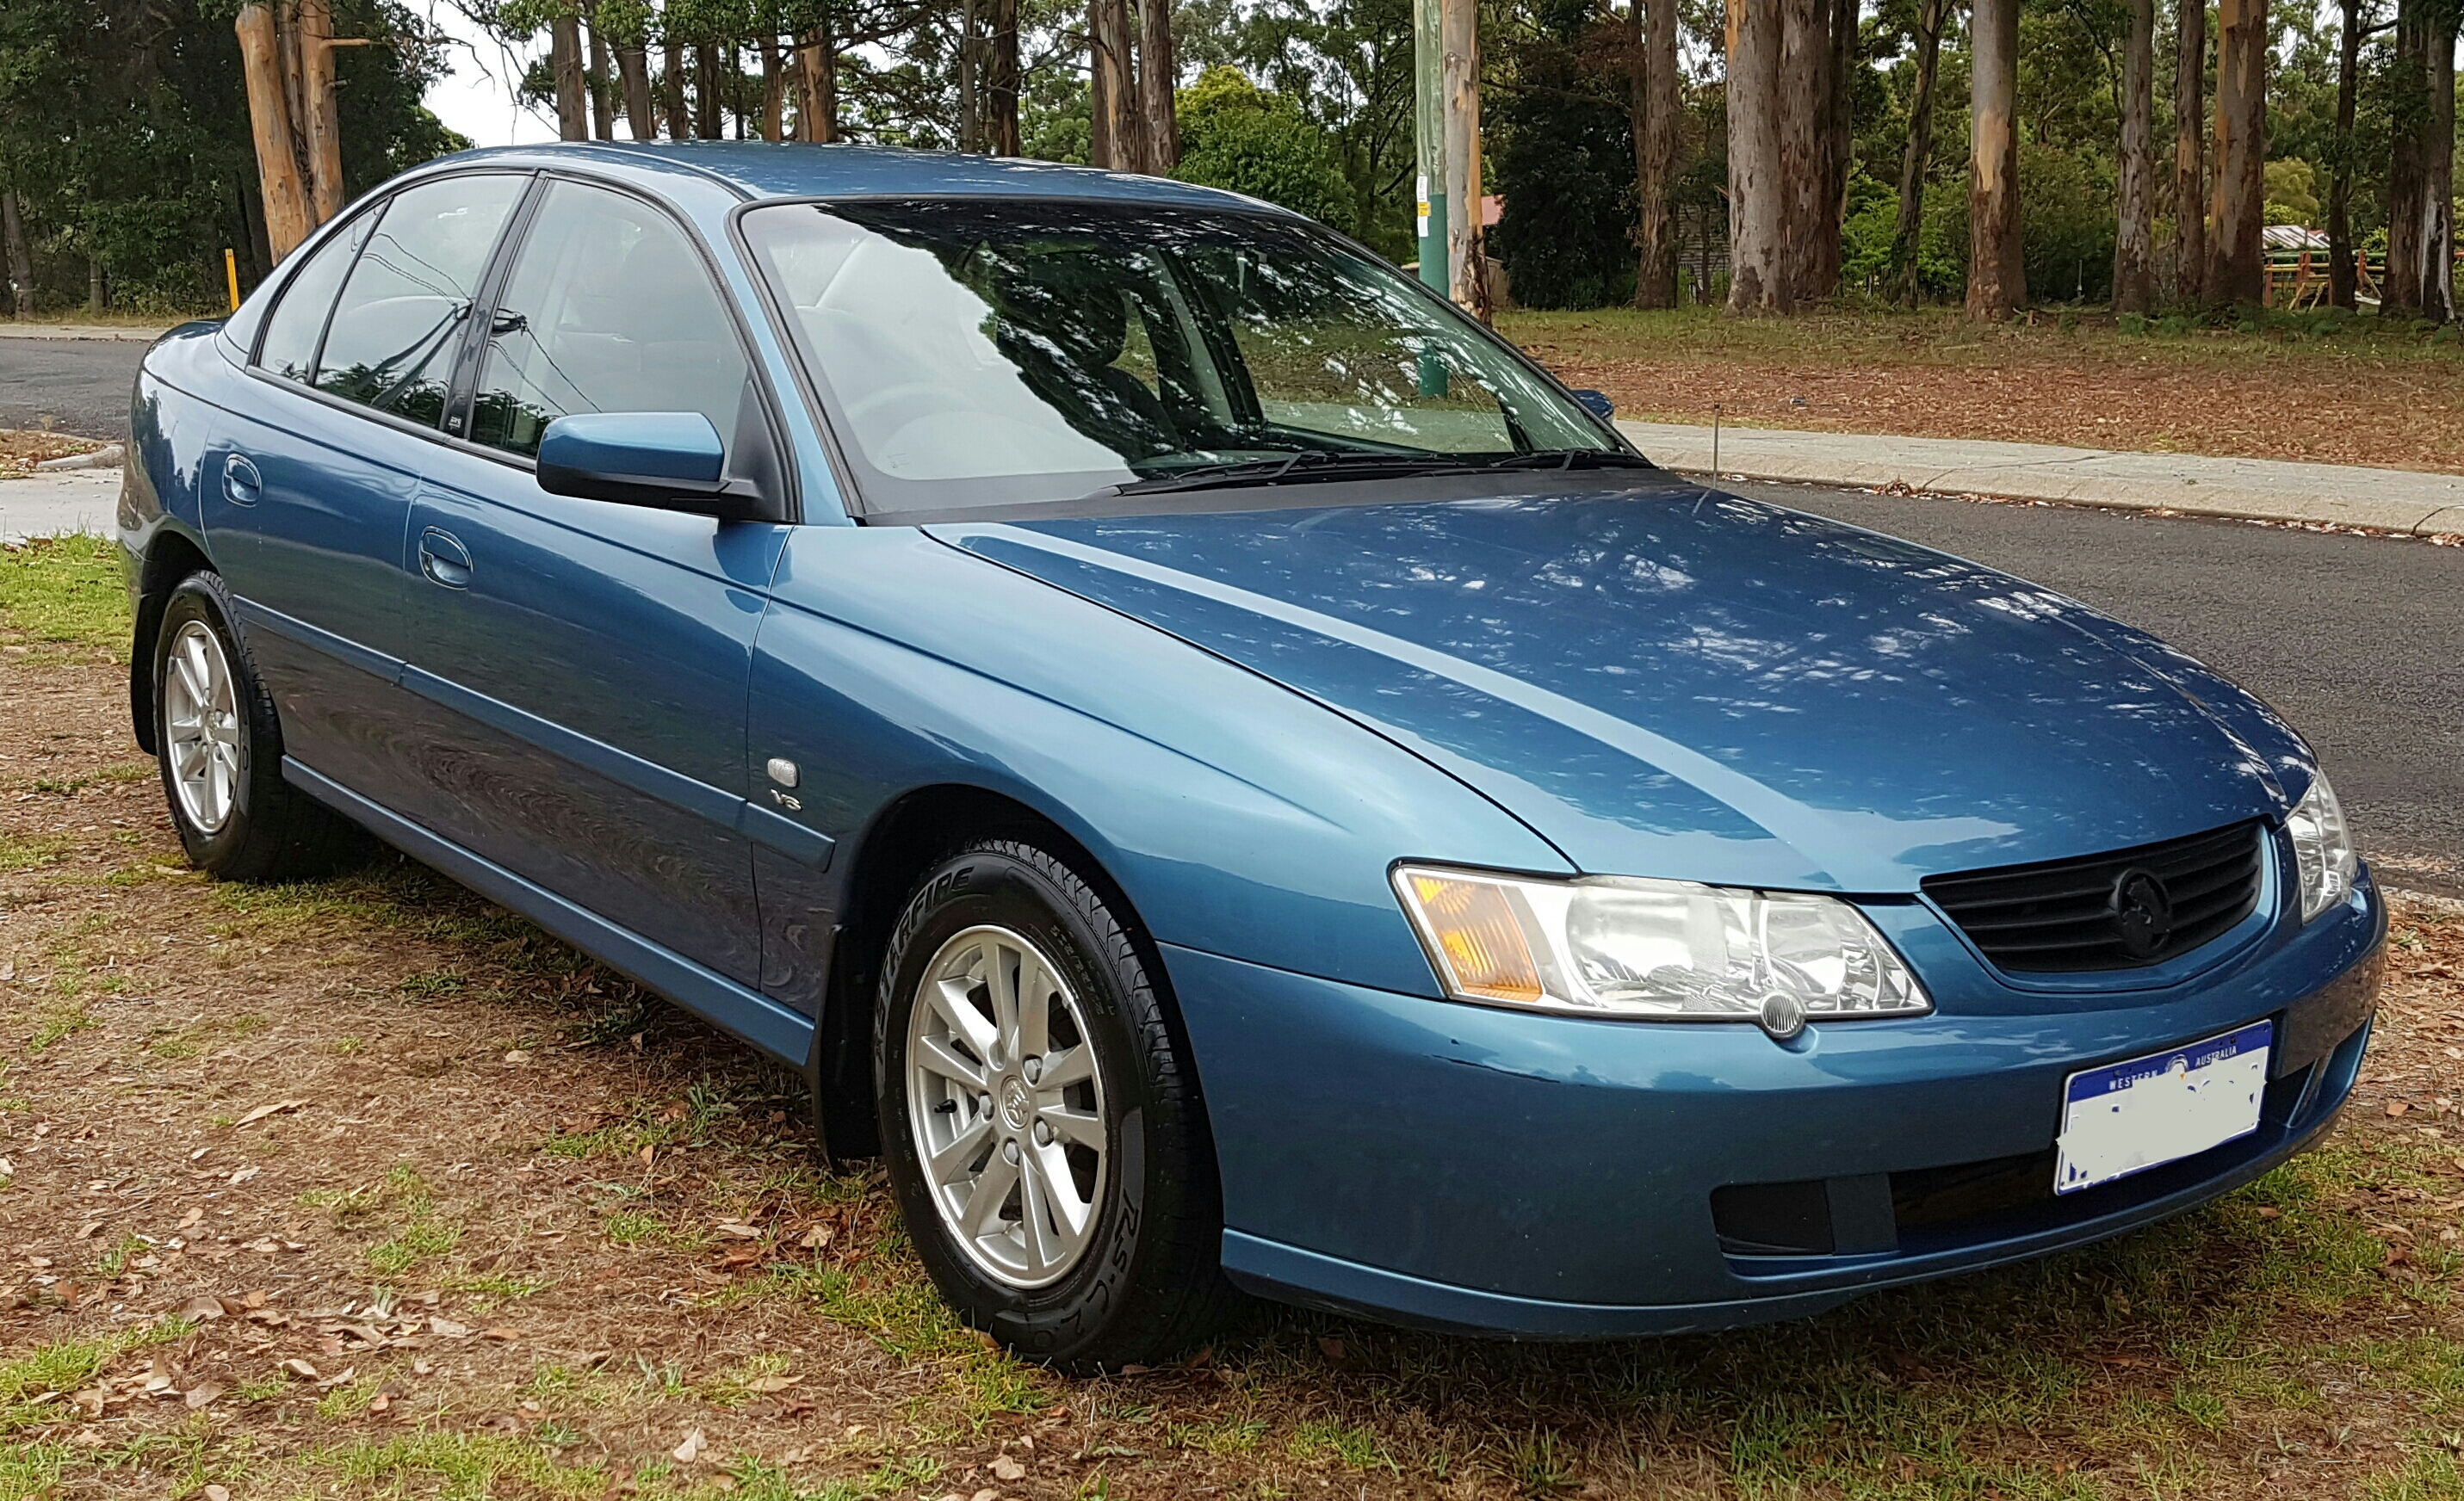 Commodore - Manjimup Car Detailing